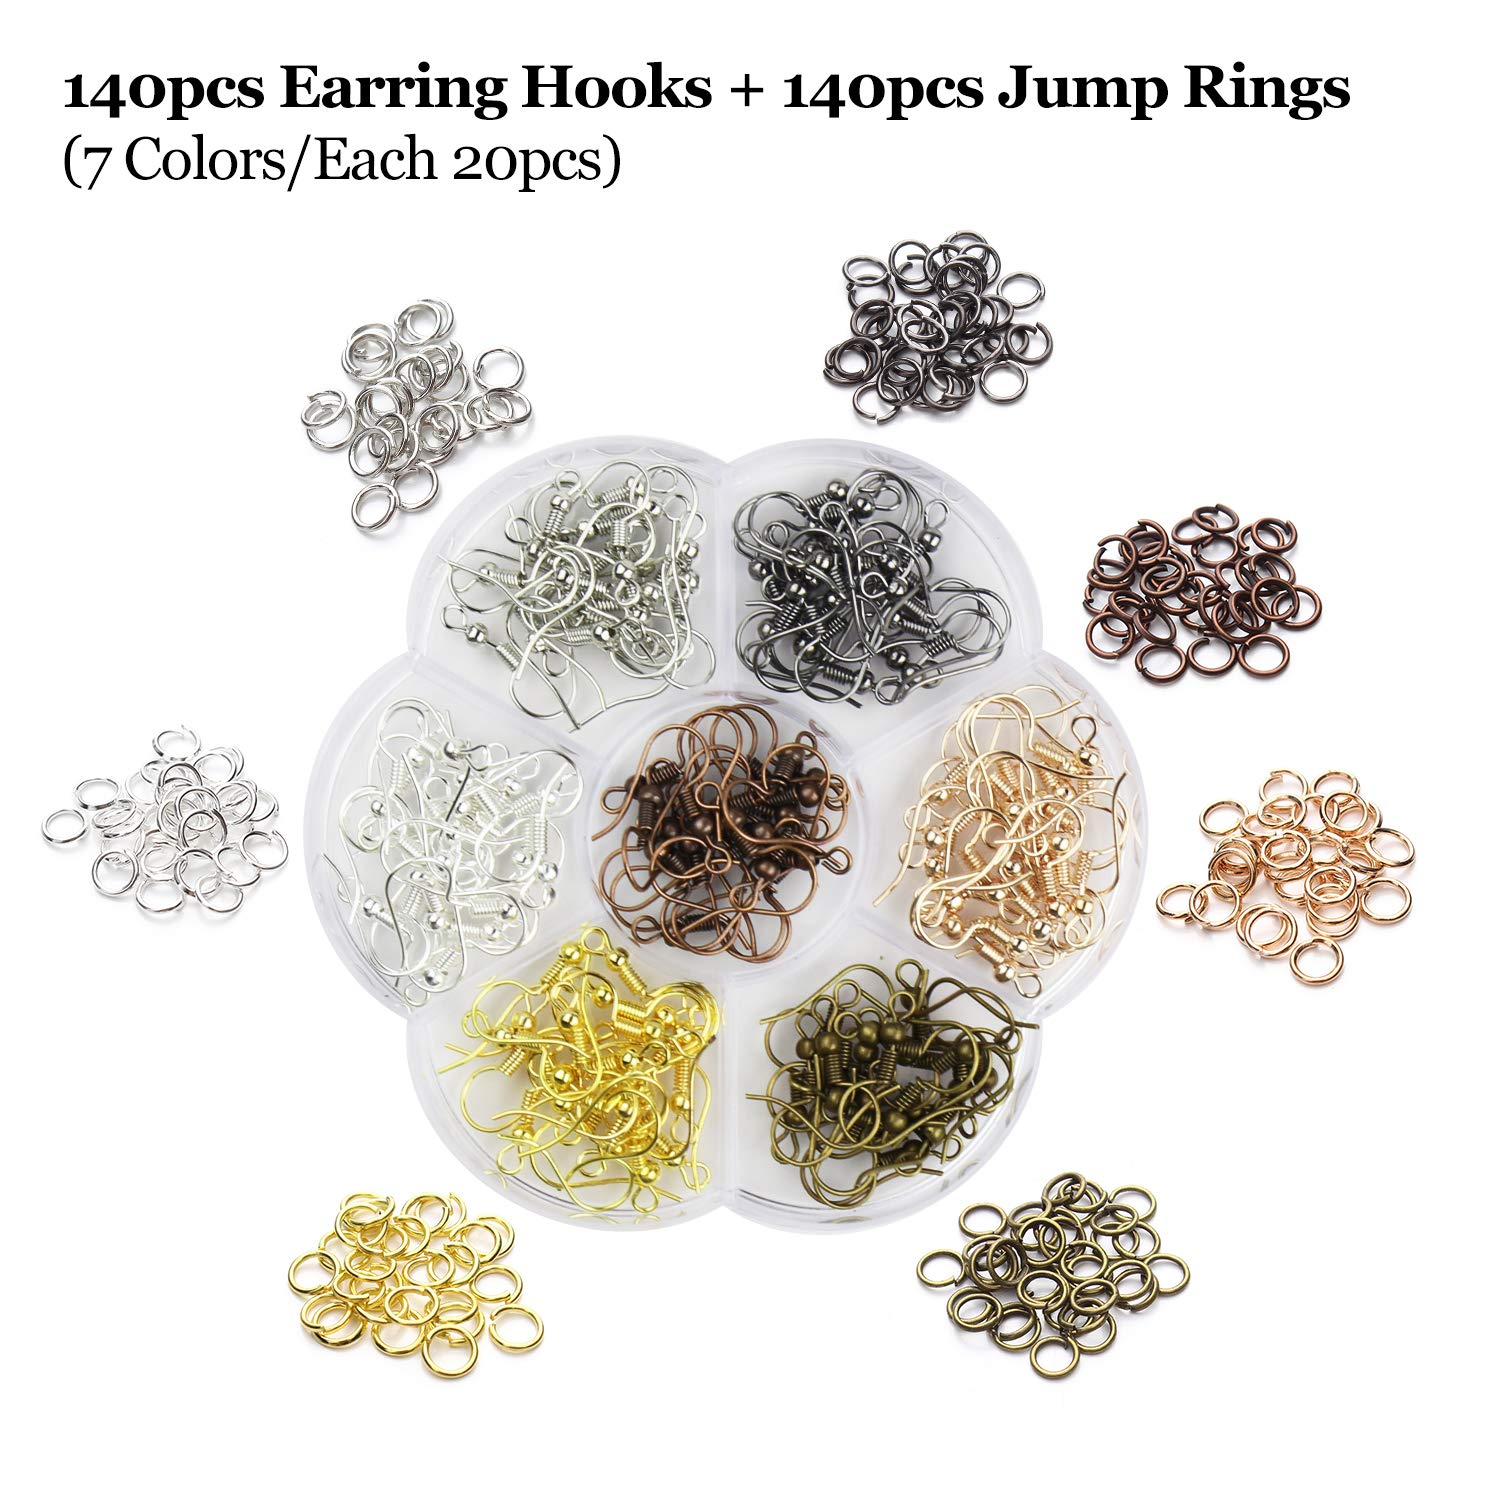 10pcs Metallic Faux Leather Sheets + 10pcs Double Sided Litchi Synthetic Leather Fabric Sheets(6''x 6'') with 140pcs Earring Hooks, 140pcs Jump Rings, Pliers and Cut Molds for Earring Making Crafts by SIMPZIA (Image #5)